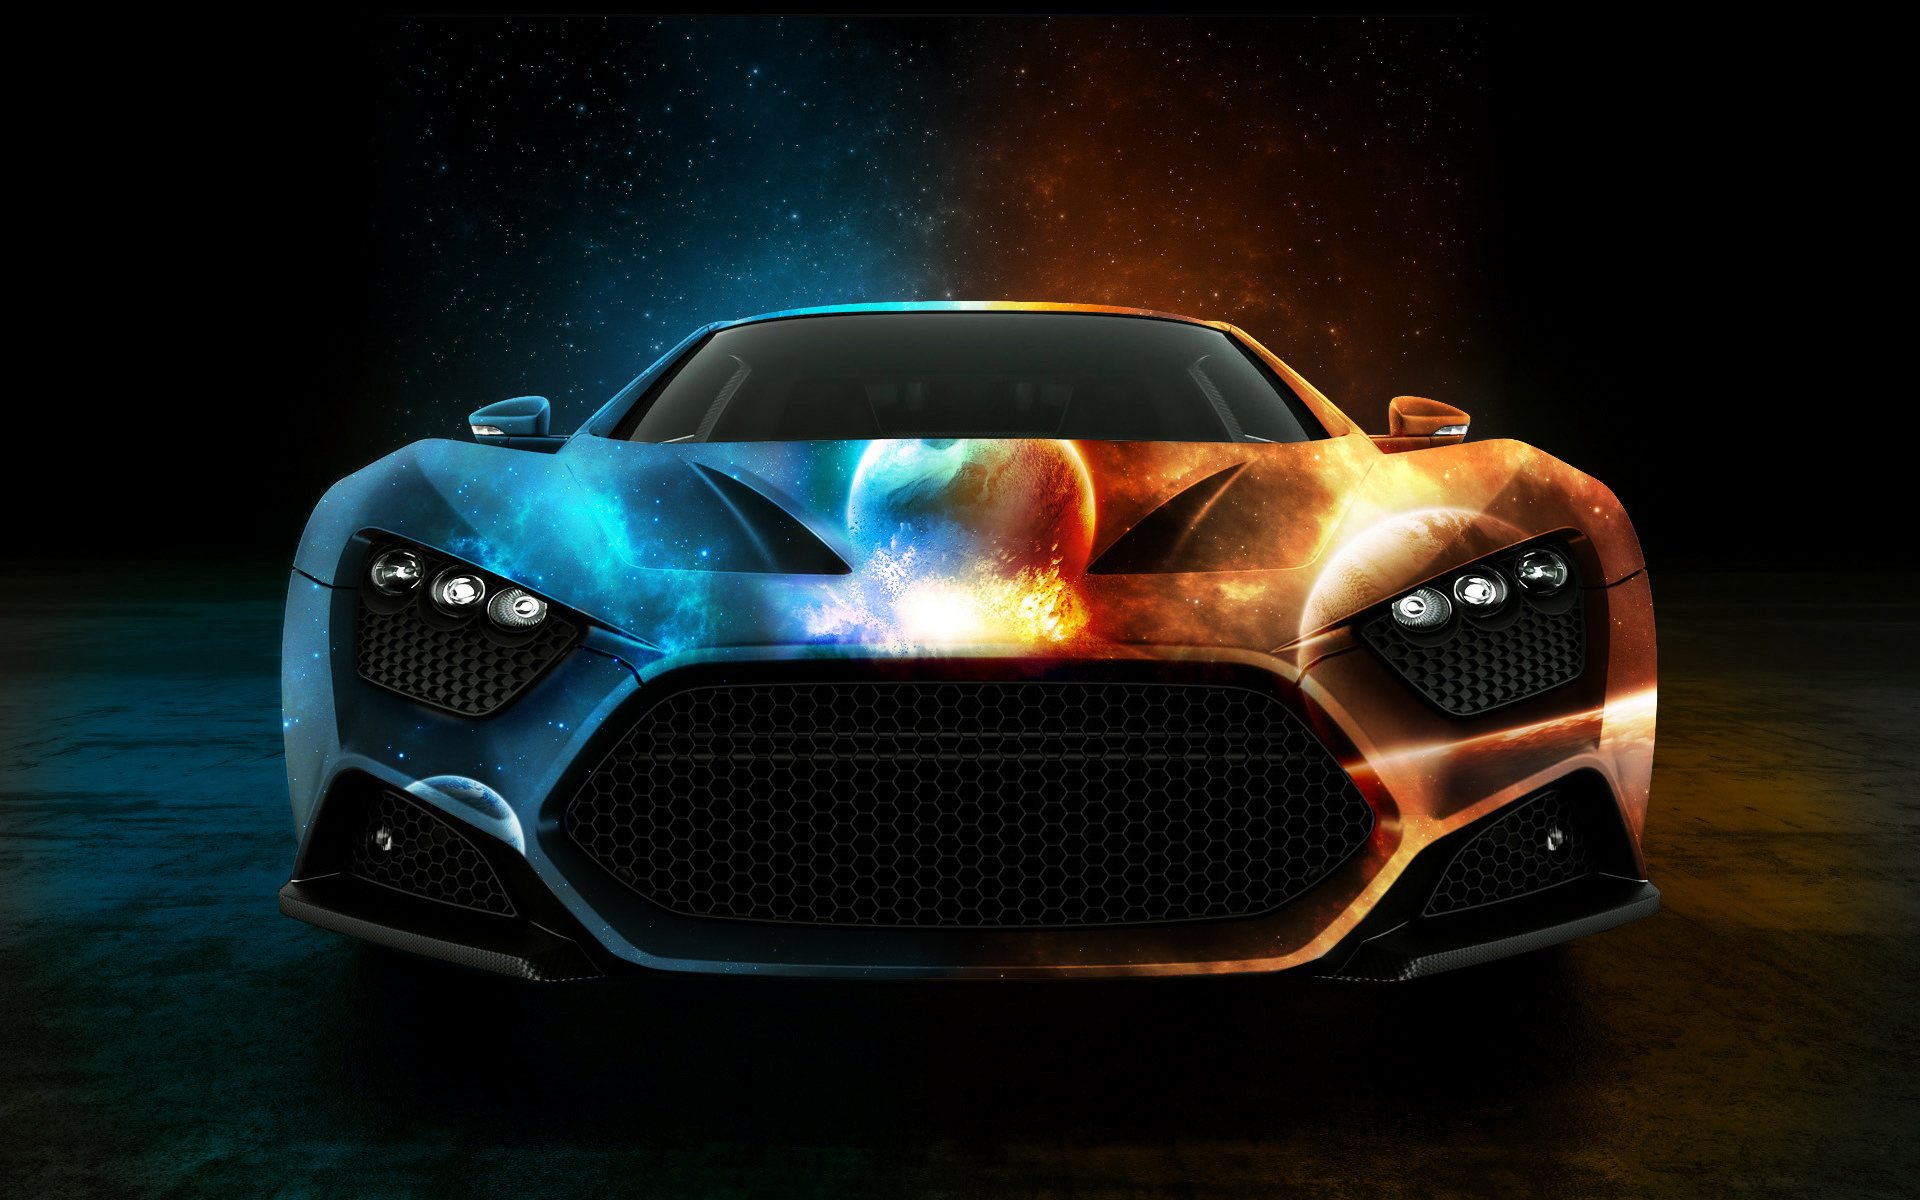 Cool car fire hot original 602425 wallpaper wallpaper